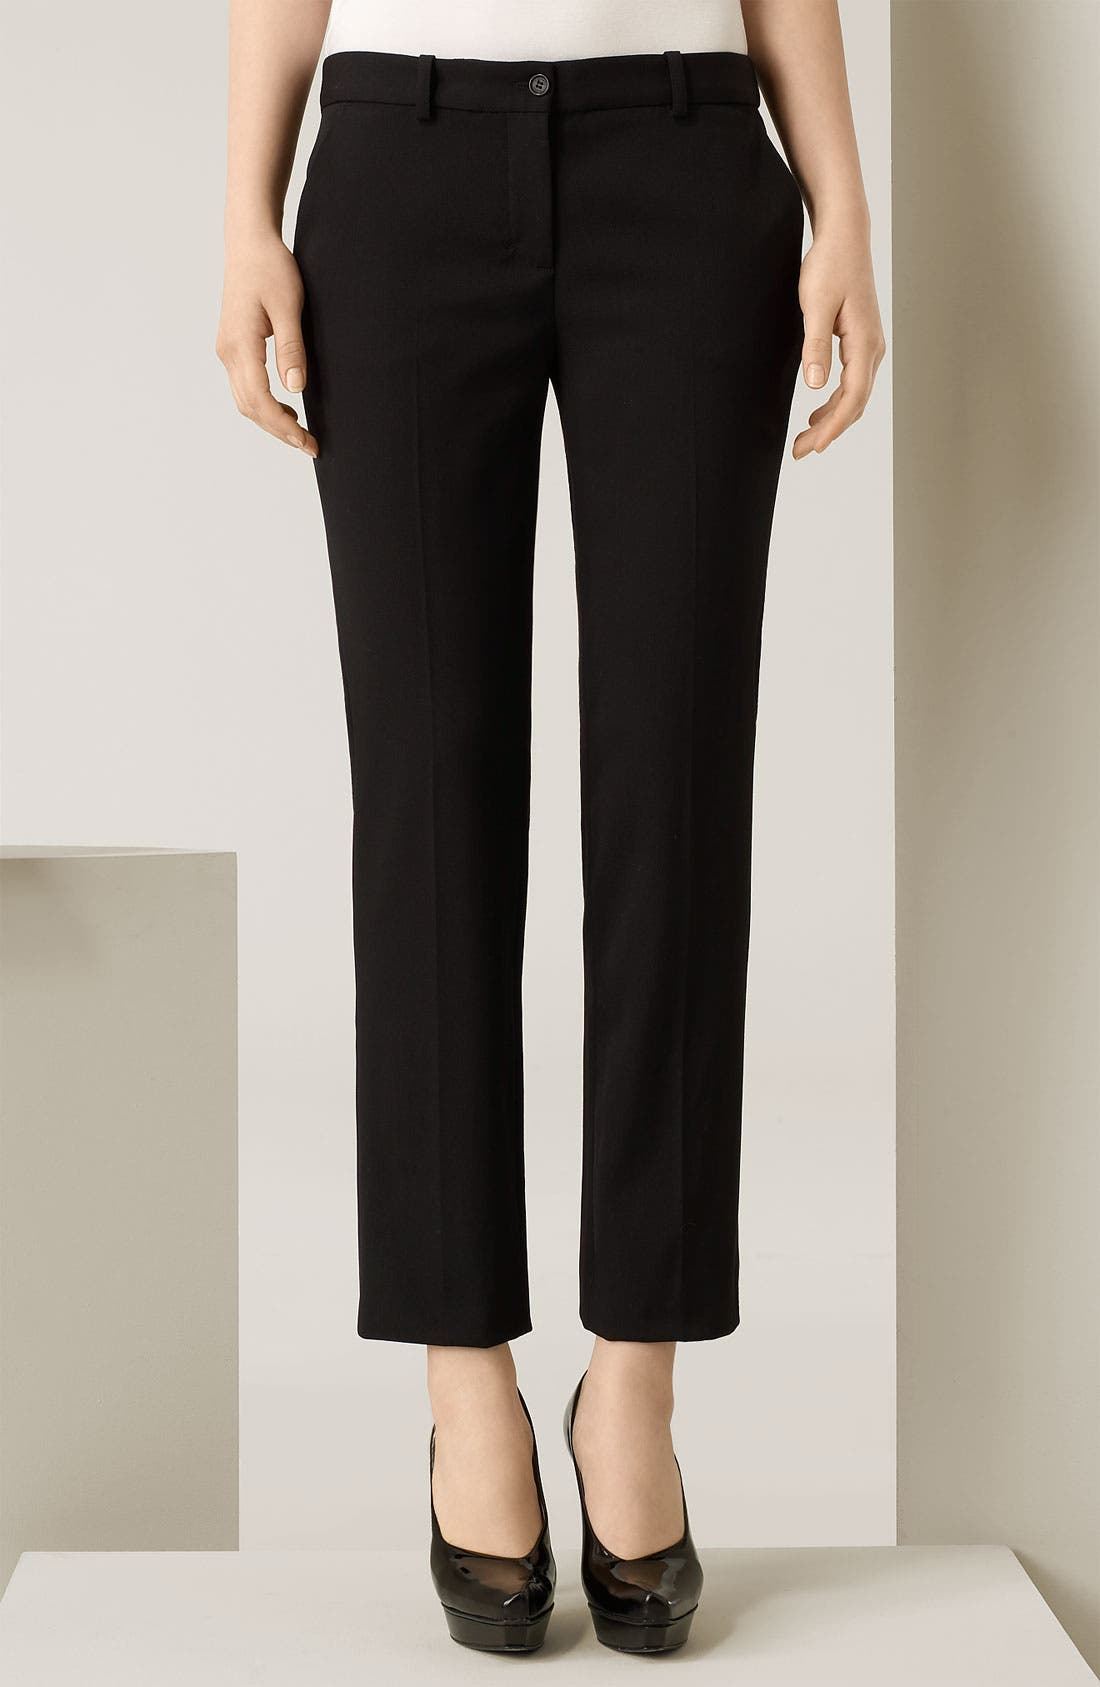 Main Image - Michael Kors Cotton Broadcloth Capri Pants